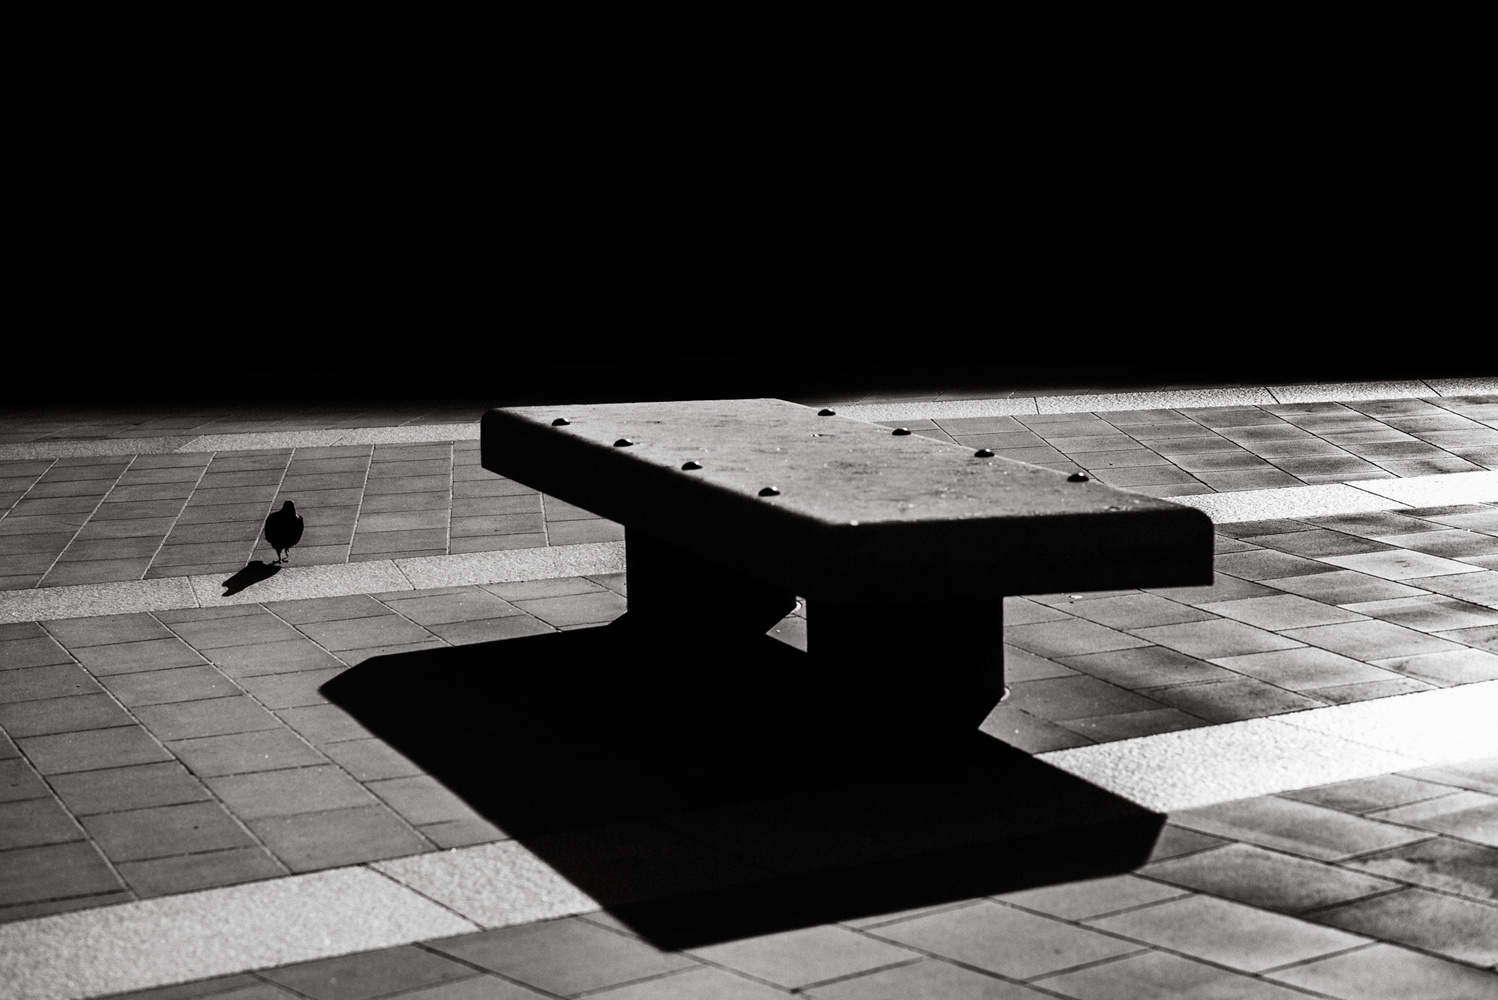 A pigeon and a stone bench